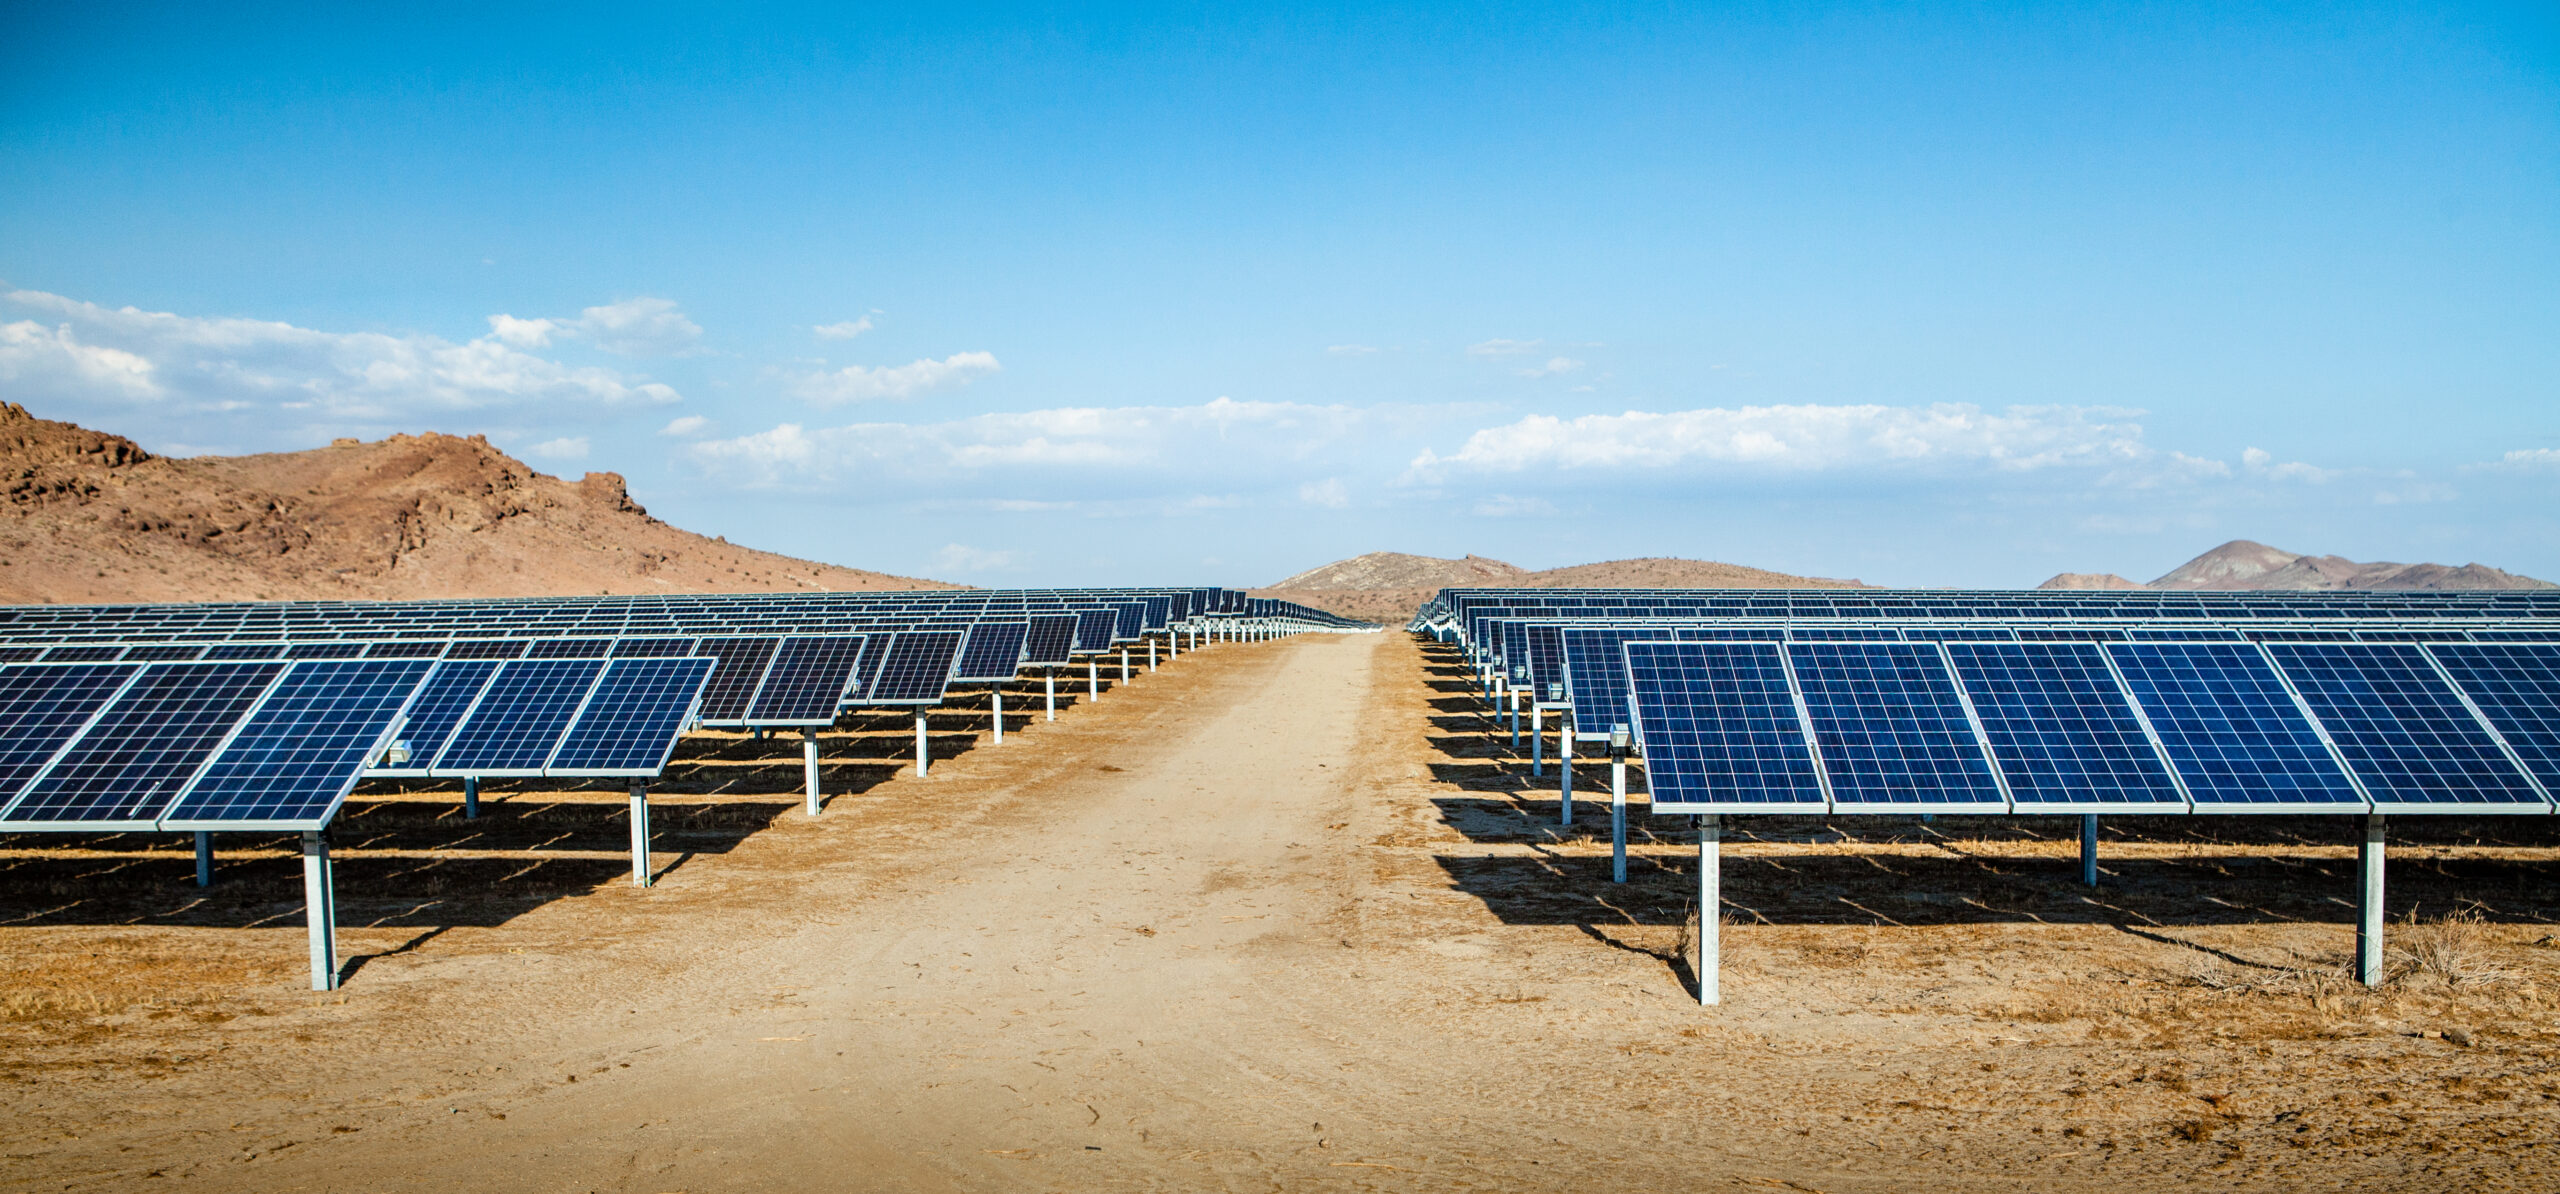 California Regulators Approve Two Greenhouse Gas Emission Reduction Targets as Statewide Integrated Resource Plan Moves Forward